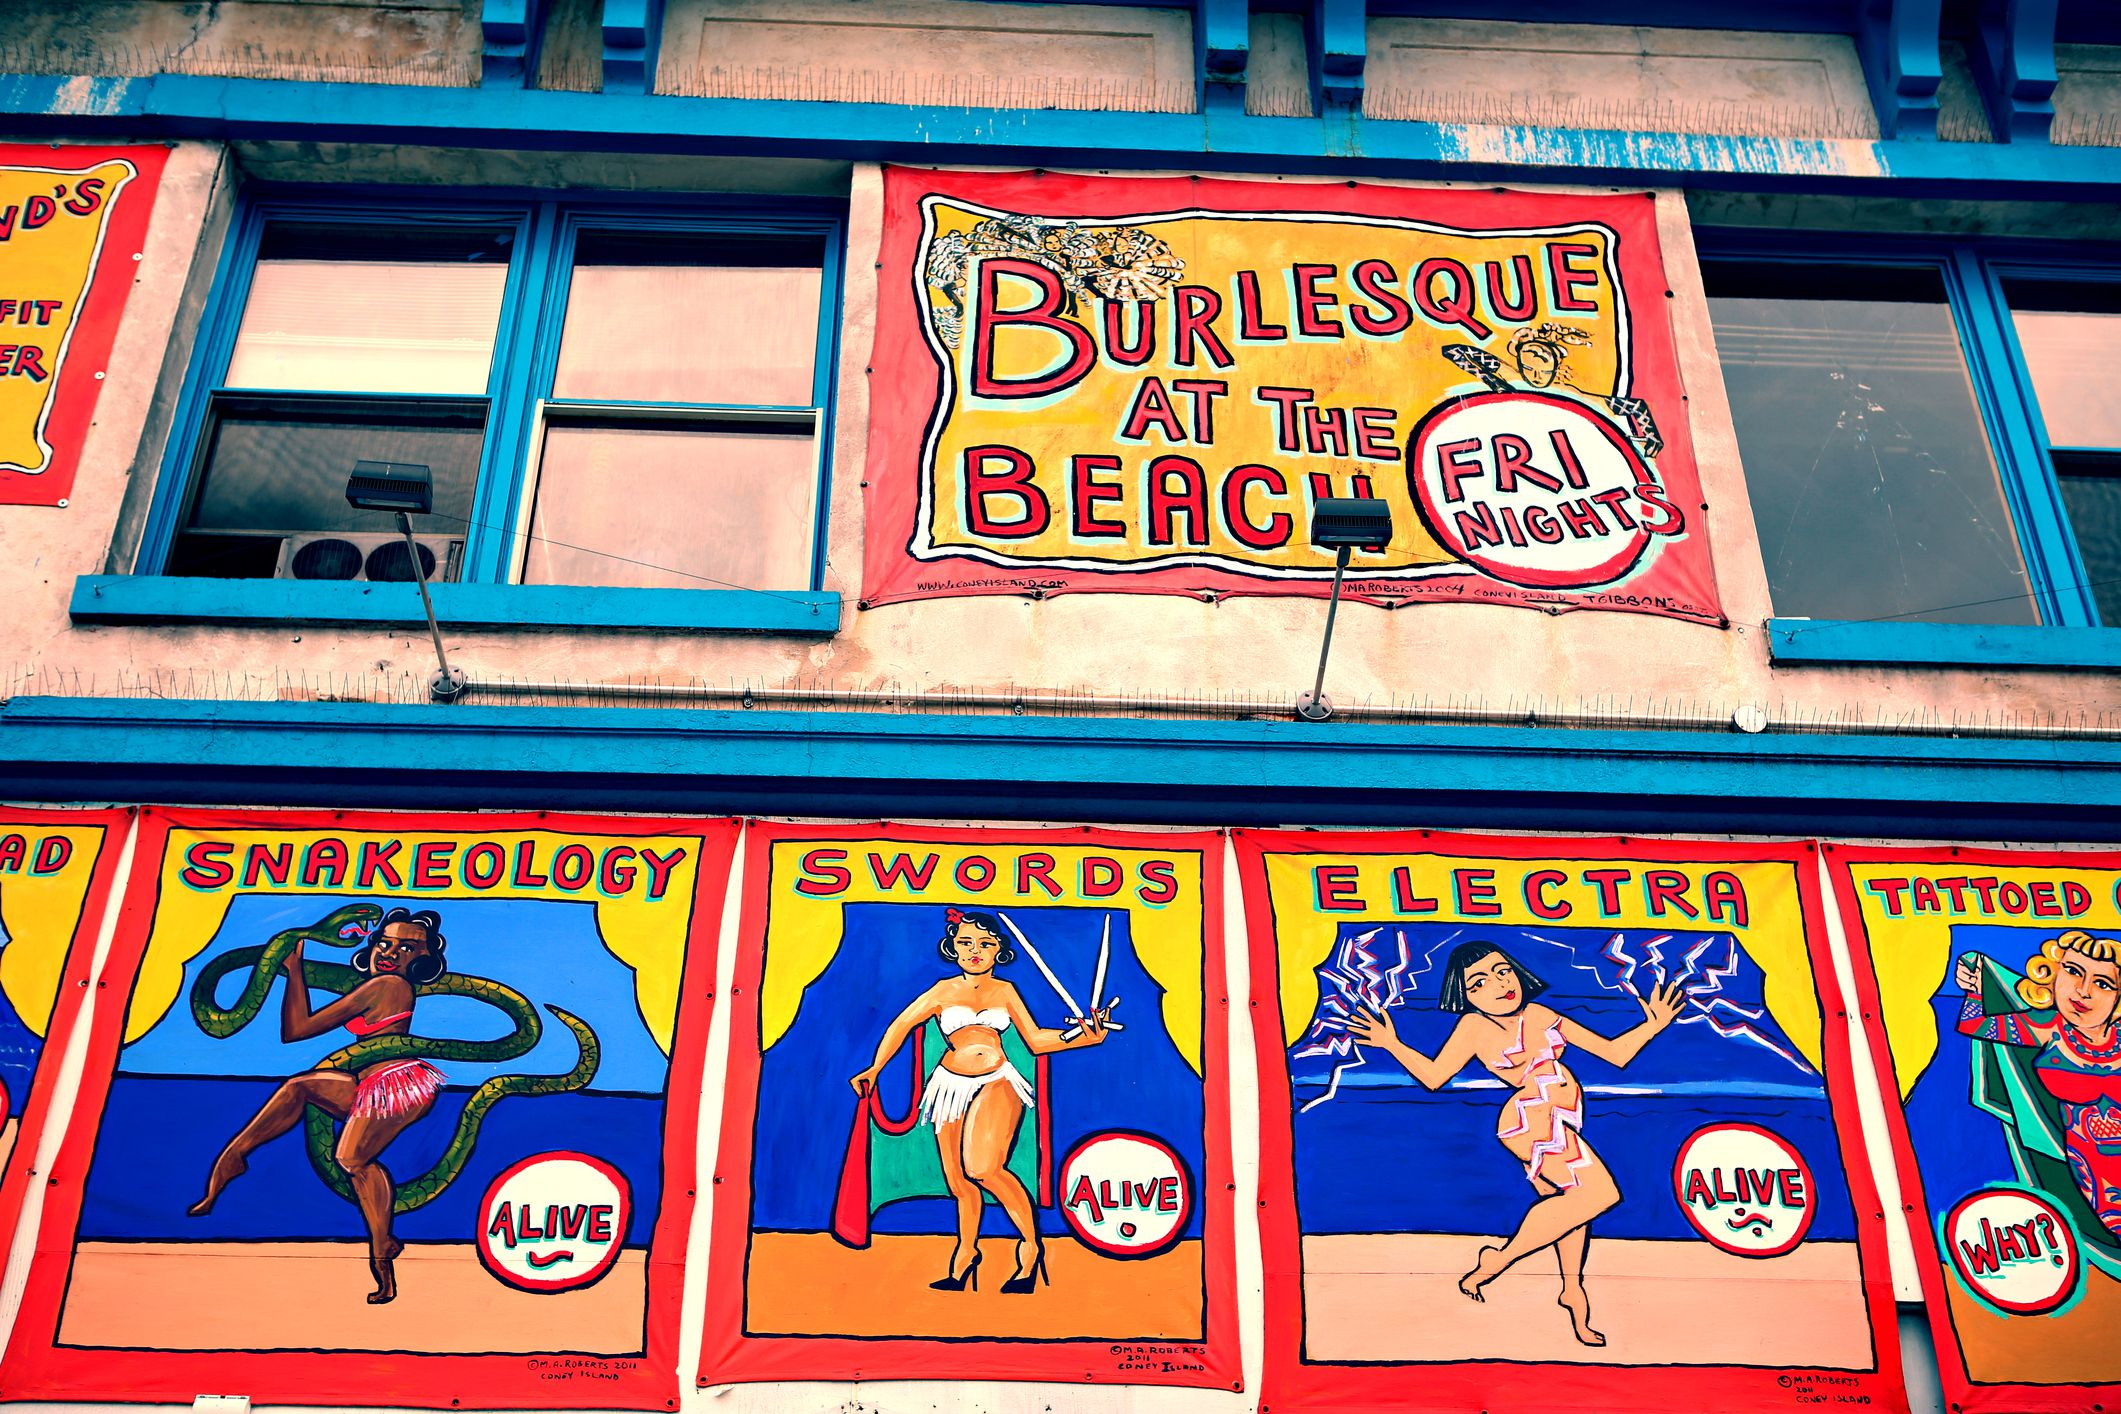 Colorful iconic vintage freak show banners and murals hanging on the facade of the Coney Island Museum building in Coney Island, Brooklyn